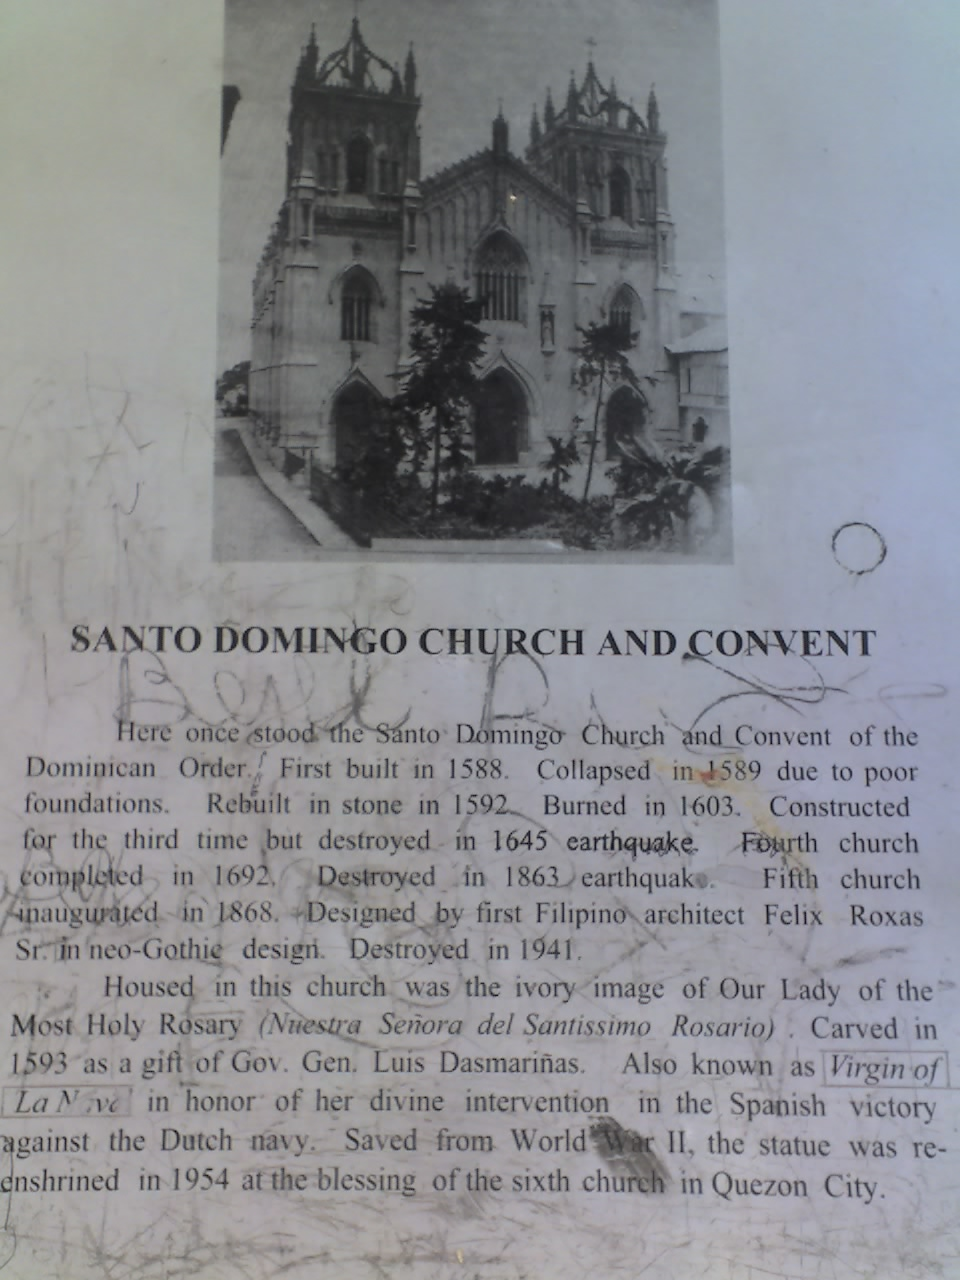 SANTO DOMINGO CHURCH AND CONVENT